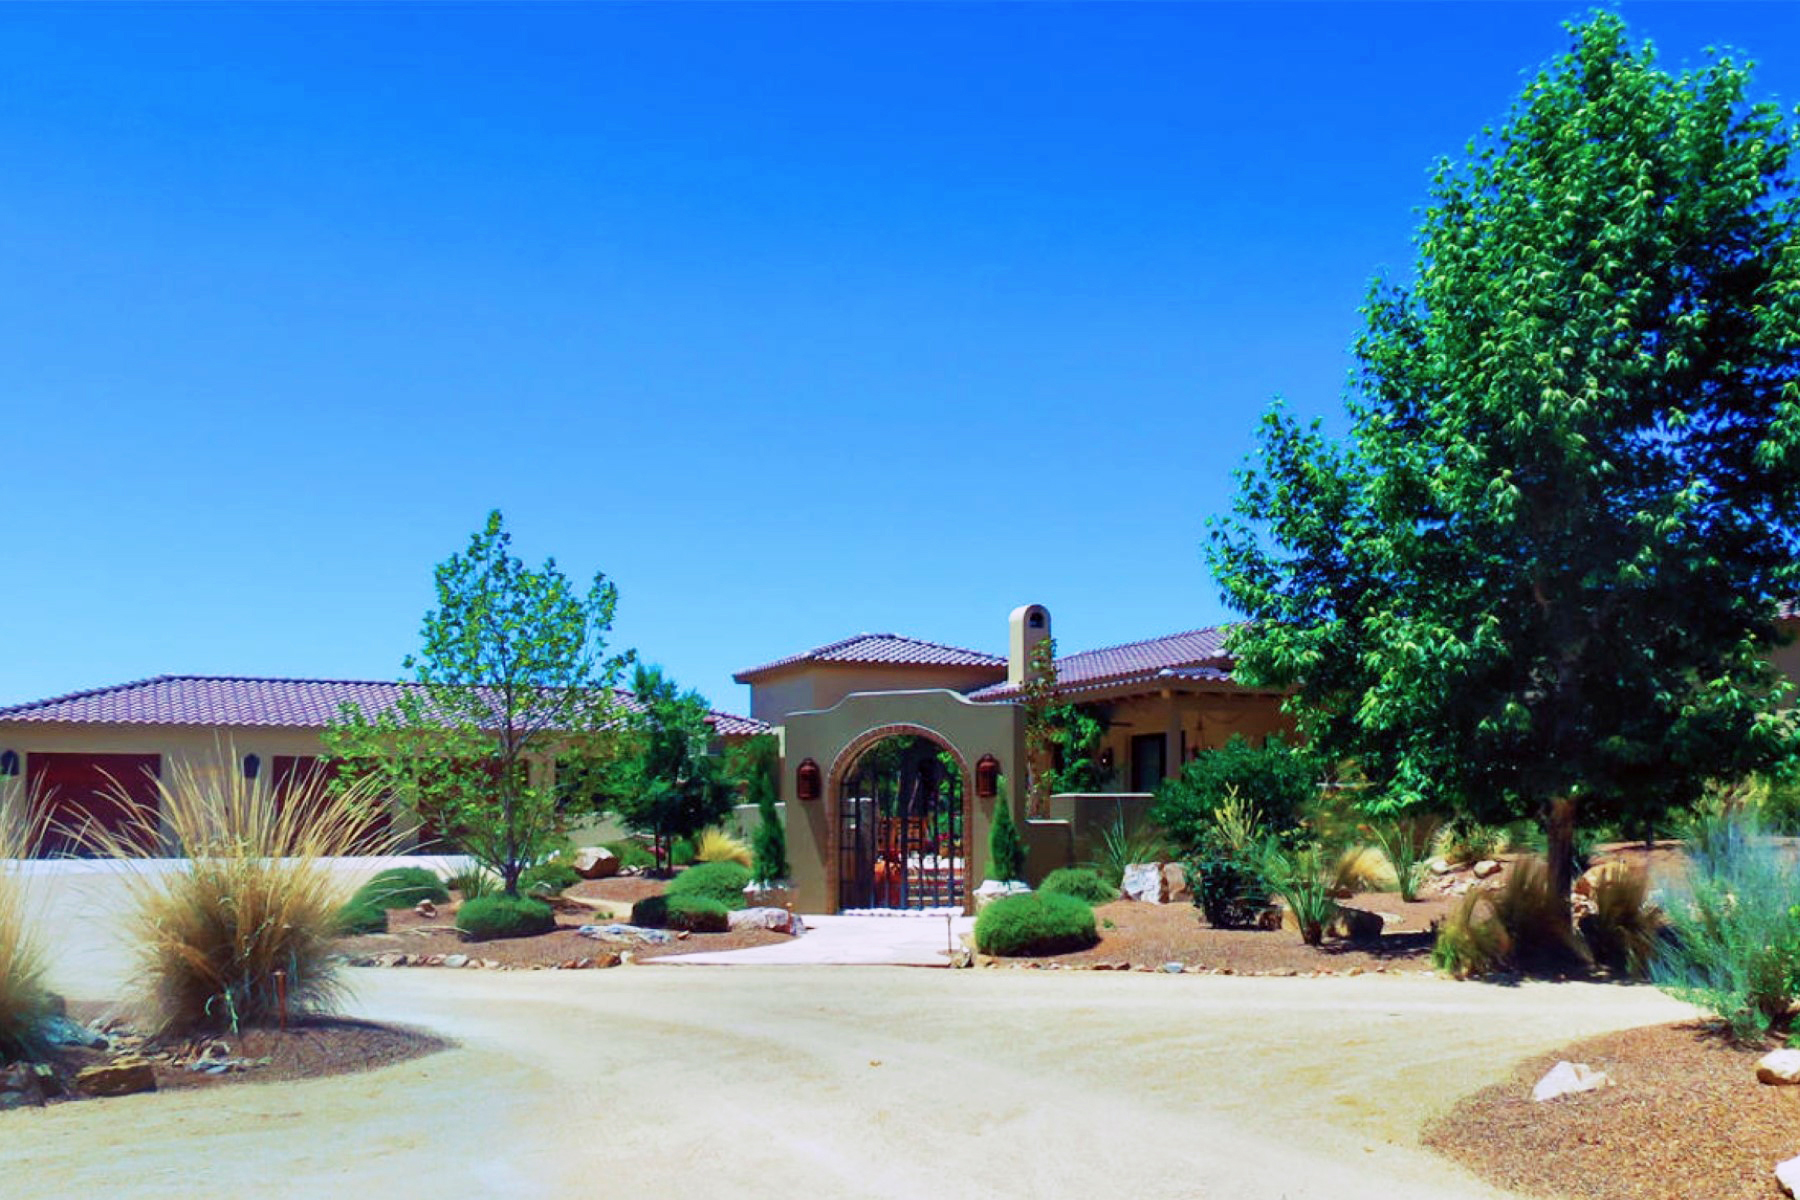 独户住宅 为 销售 在 Gorgeous Hacienda Home in the Historic Ranch Corridor in Southern Arizona 47 Santa Gertrudis Tumacacori, 亚利桑那州 85640 美国